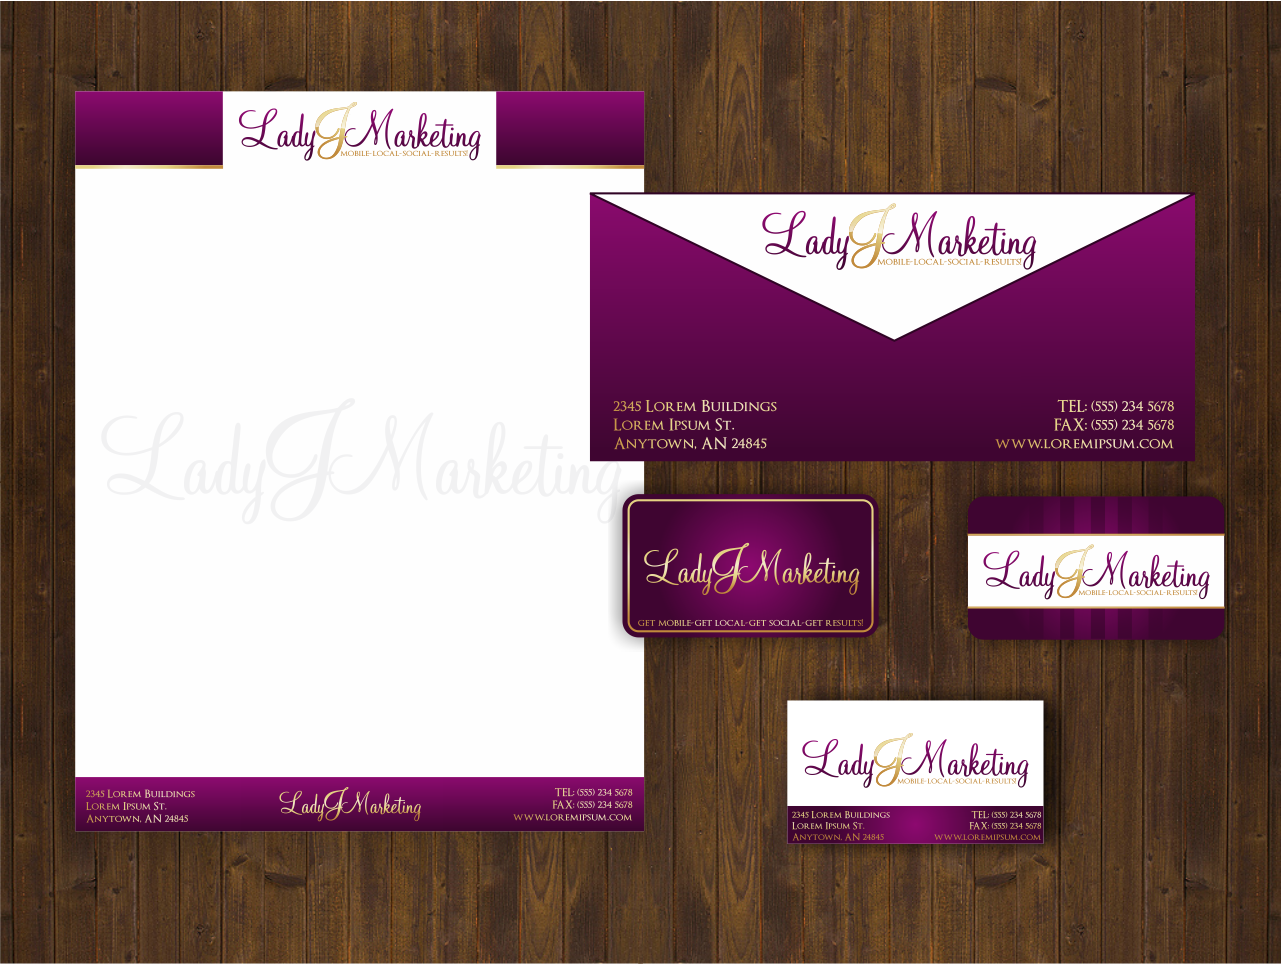 New logo wanted for Lady J Marketing